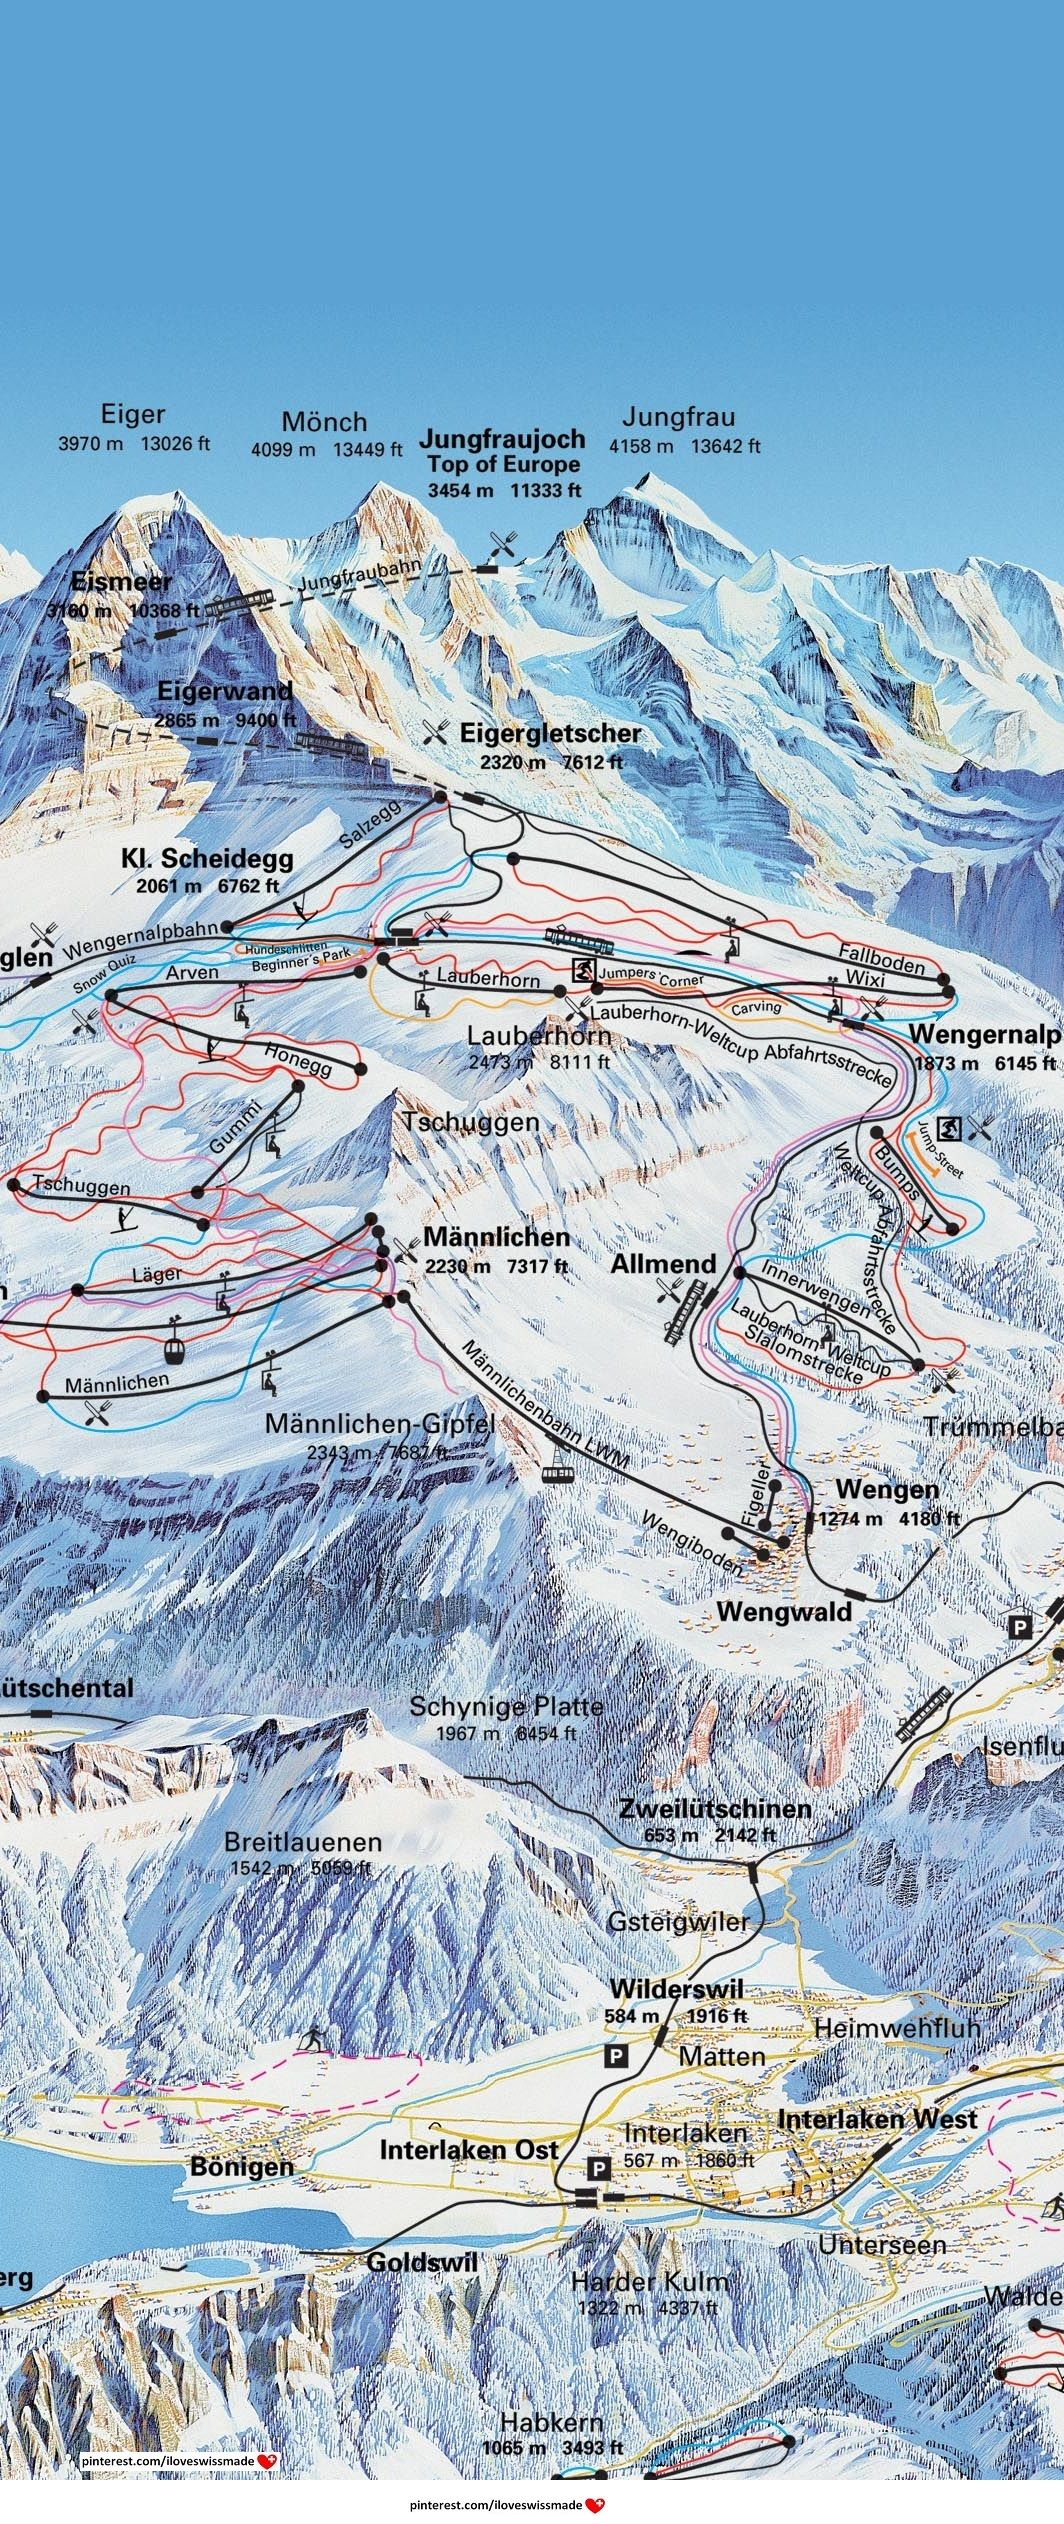 Grindelwald map with some skitracks Note the famous World Cup